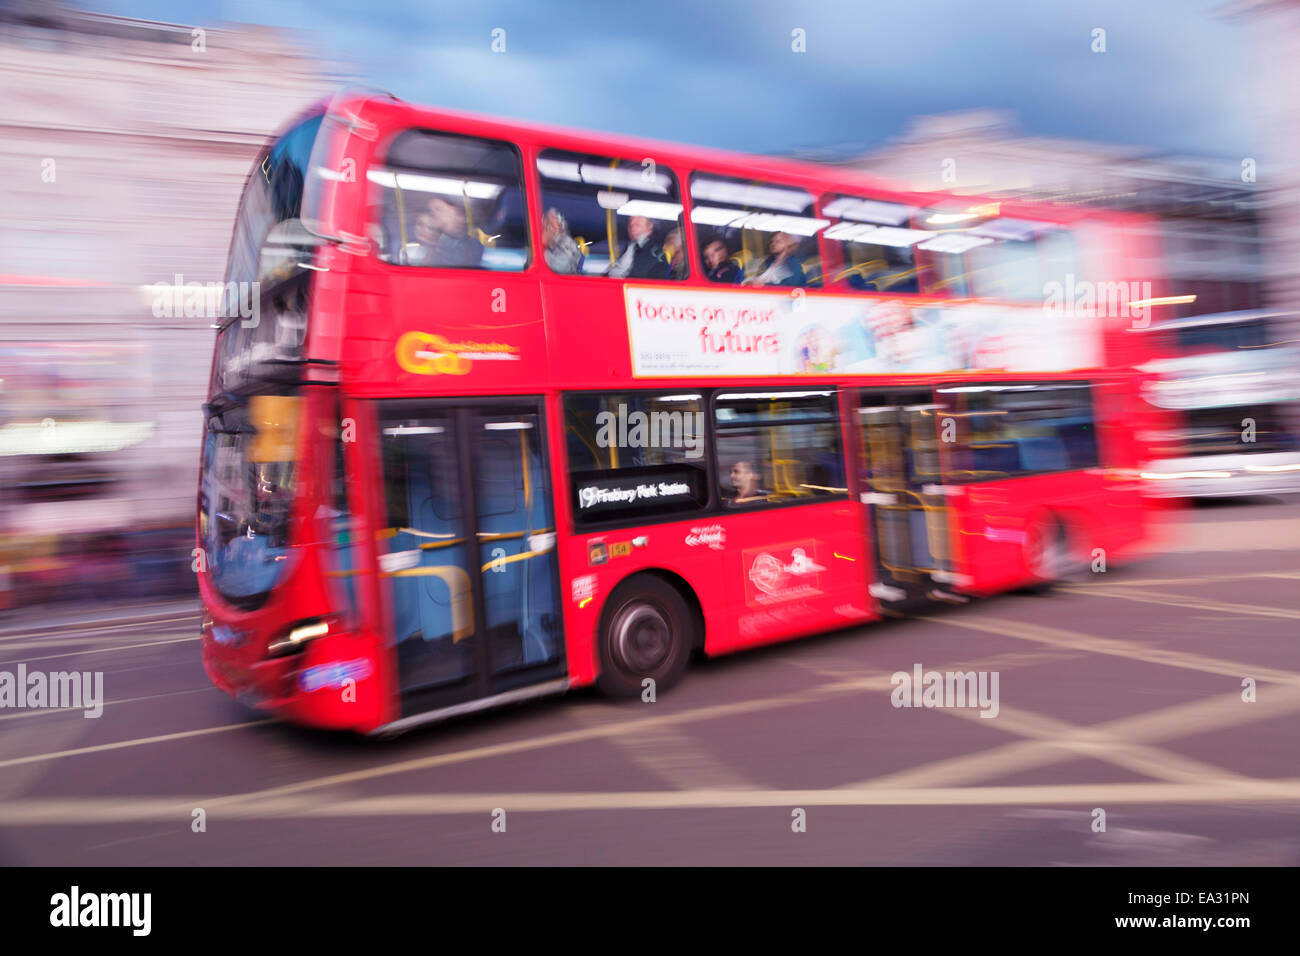 Motion blurred red double decker bus, Piccadilly Circus, London, England, United Kingdom, Europe - Stock Image